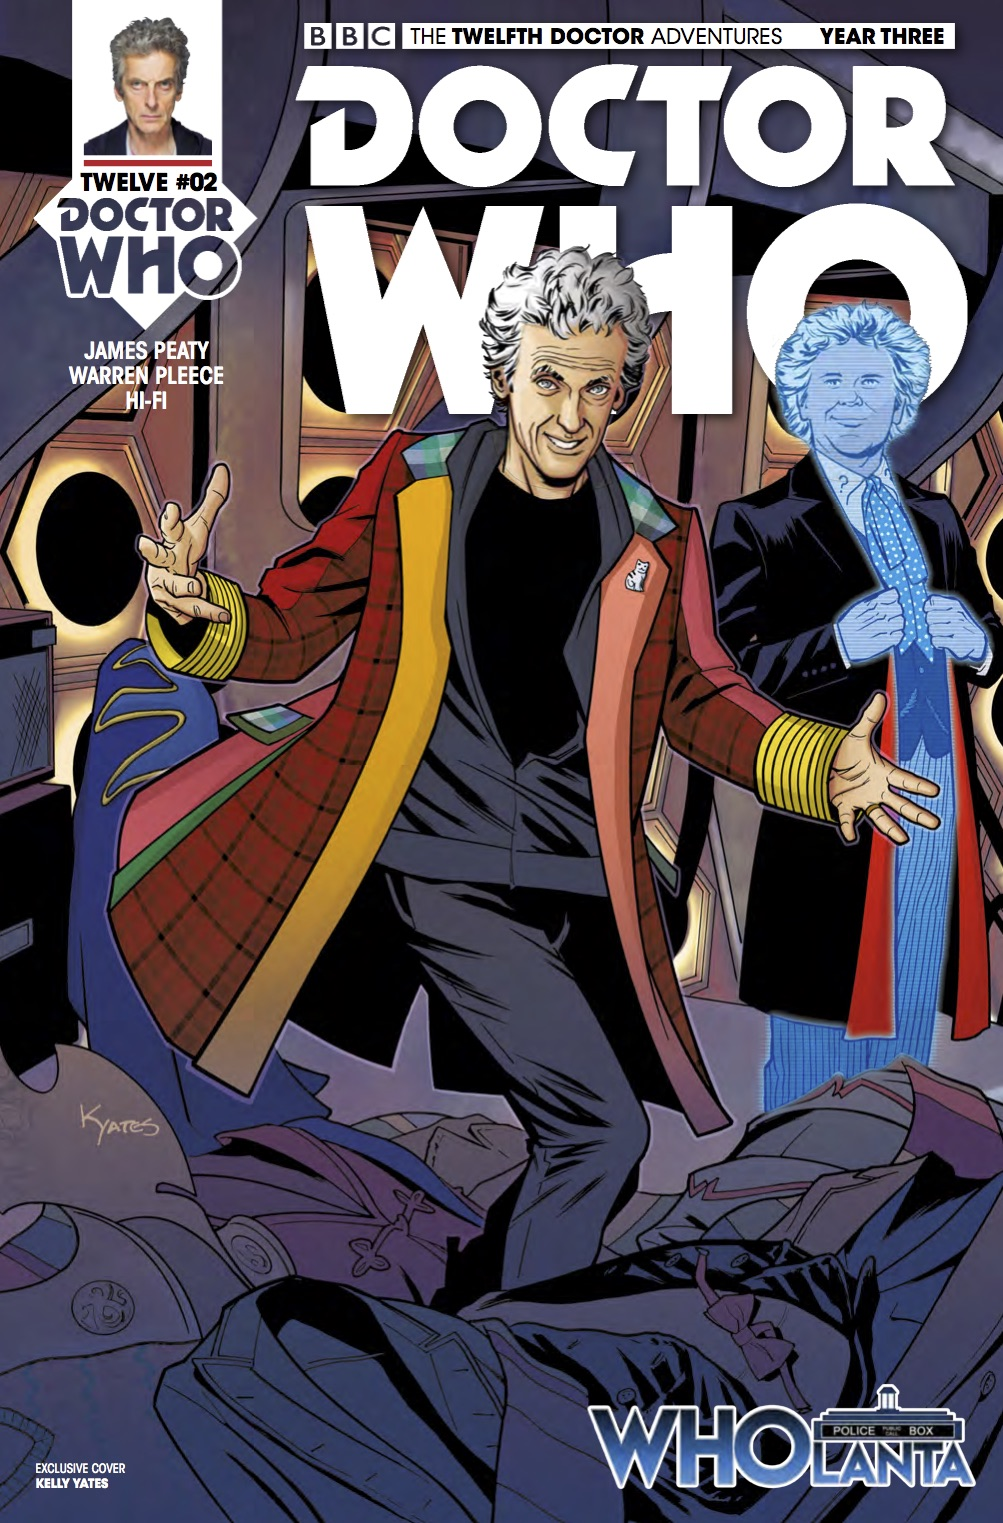 TWELFTH DOCTOR YEAR 3 Wholanta Con (Credit: Titan)